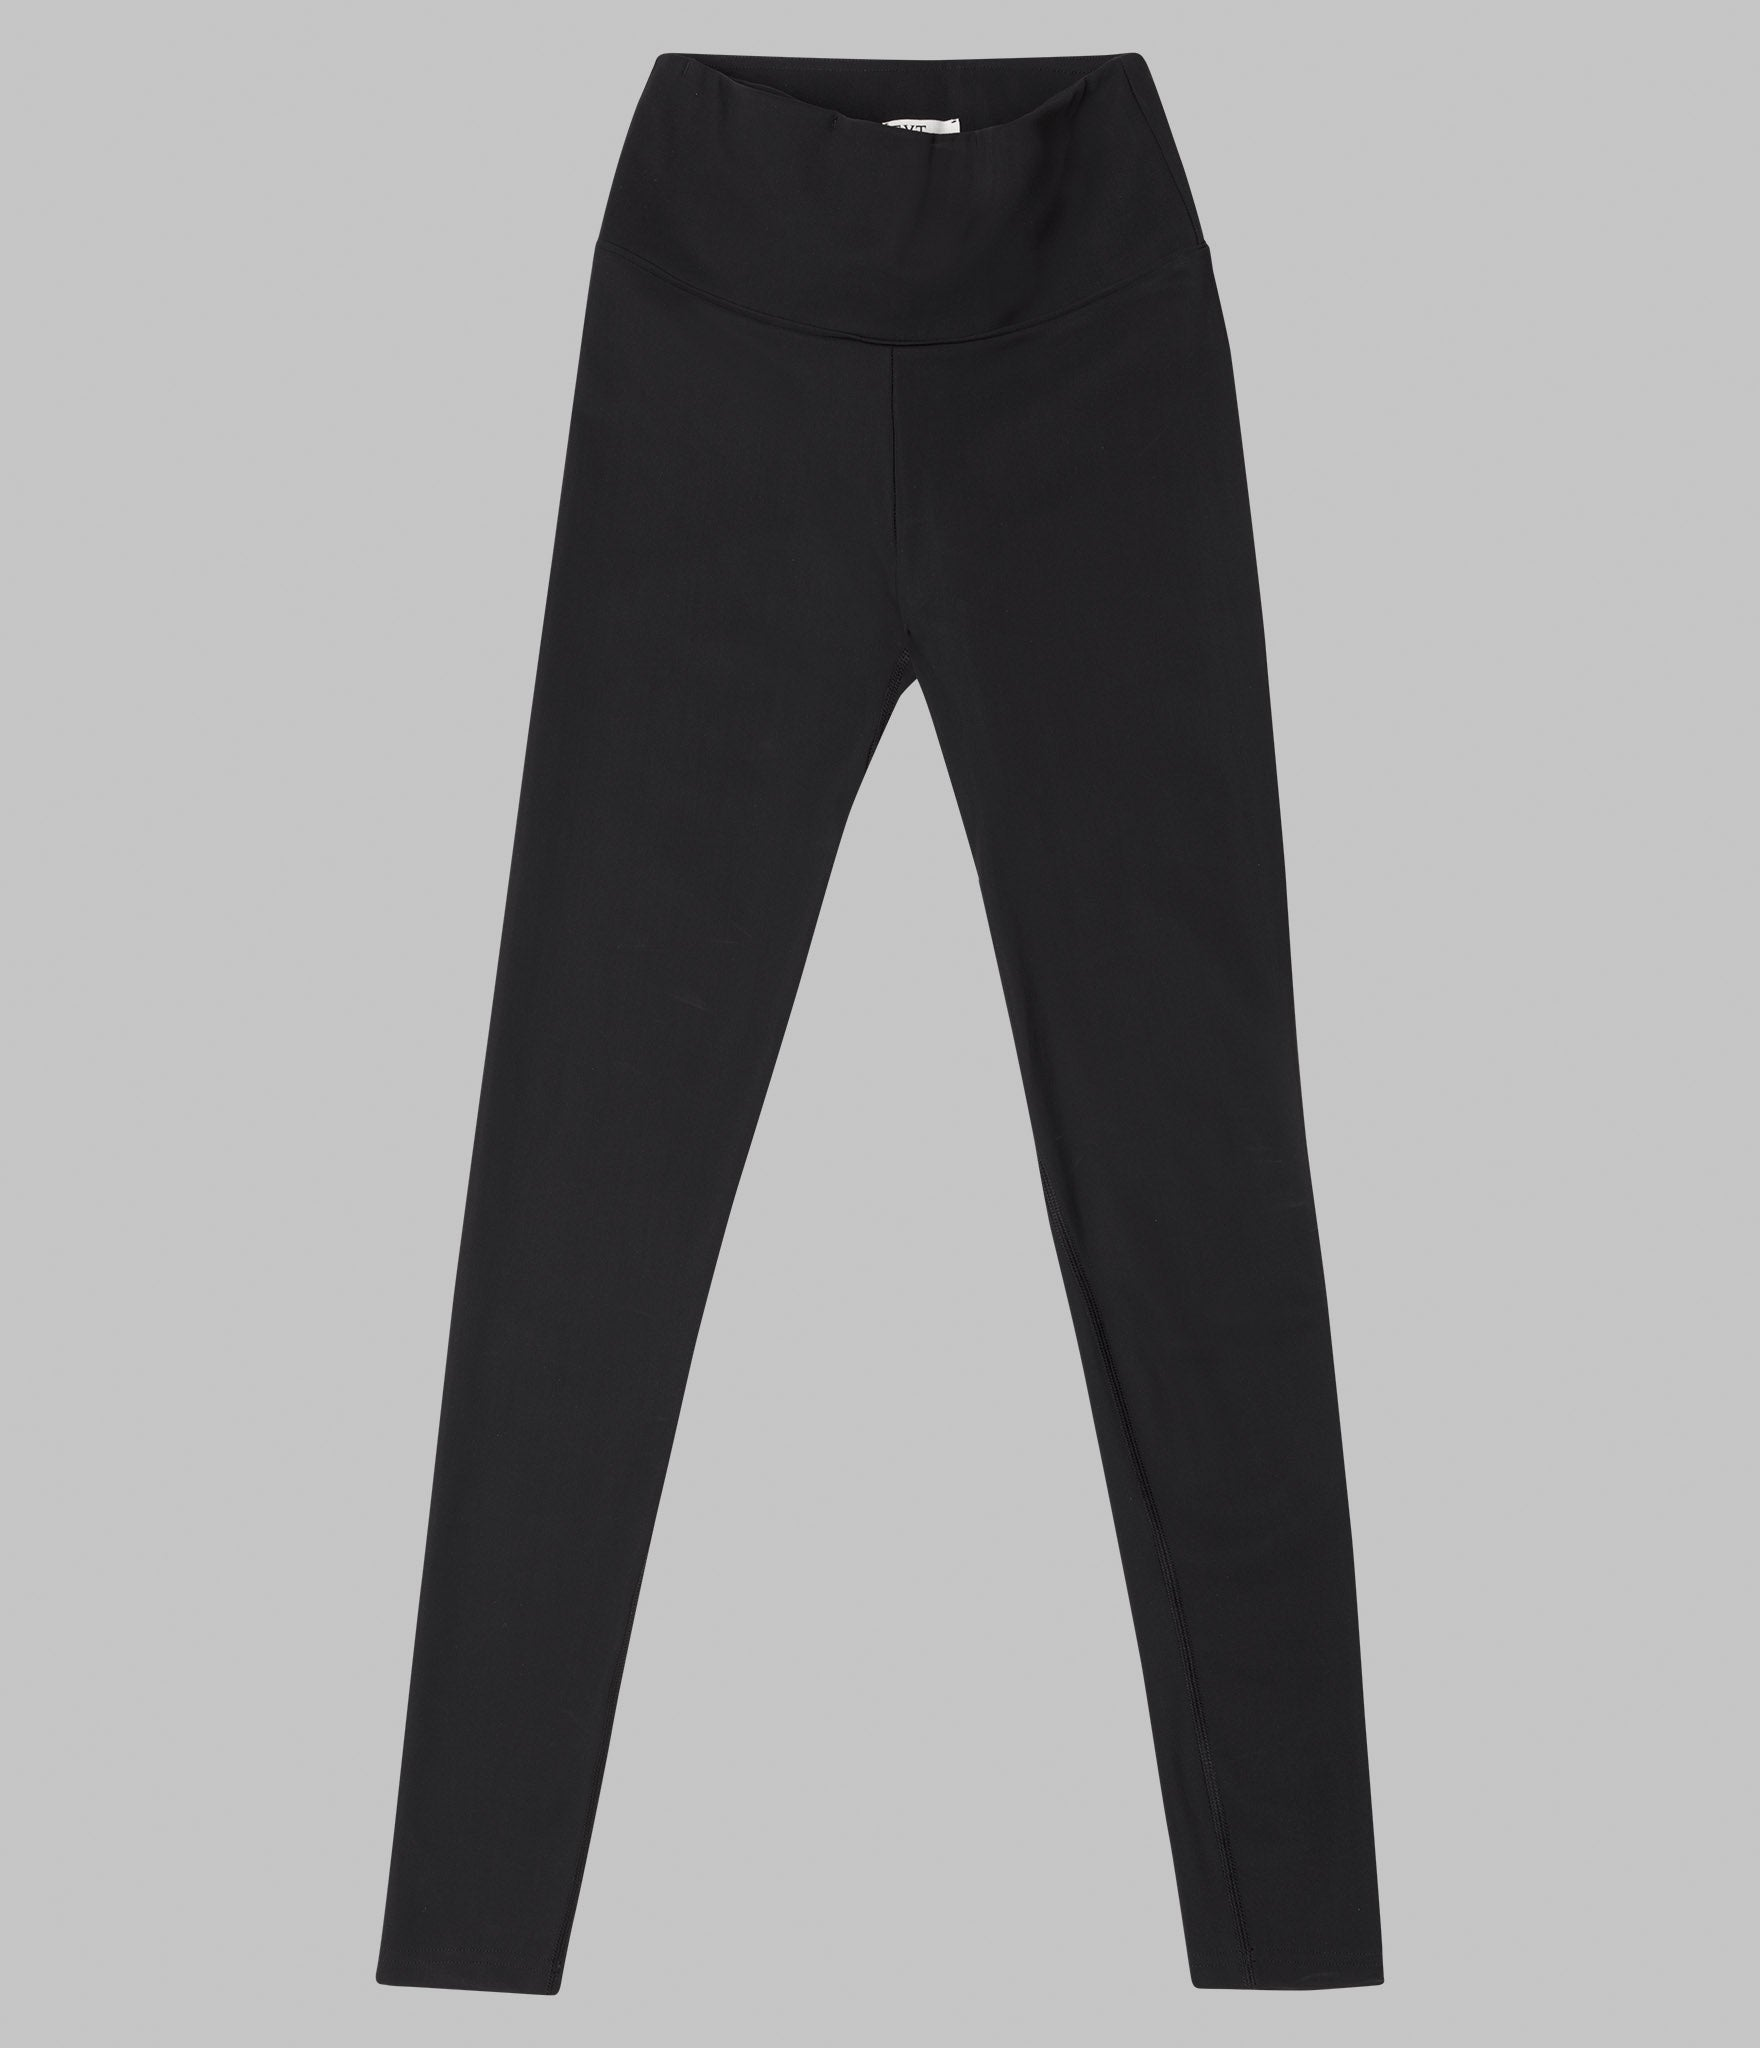 Denver Tights</br>Black